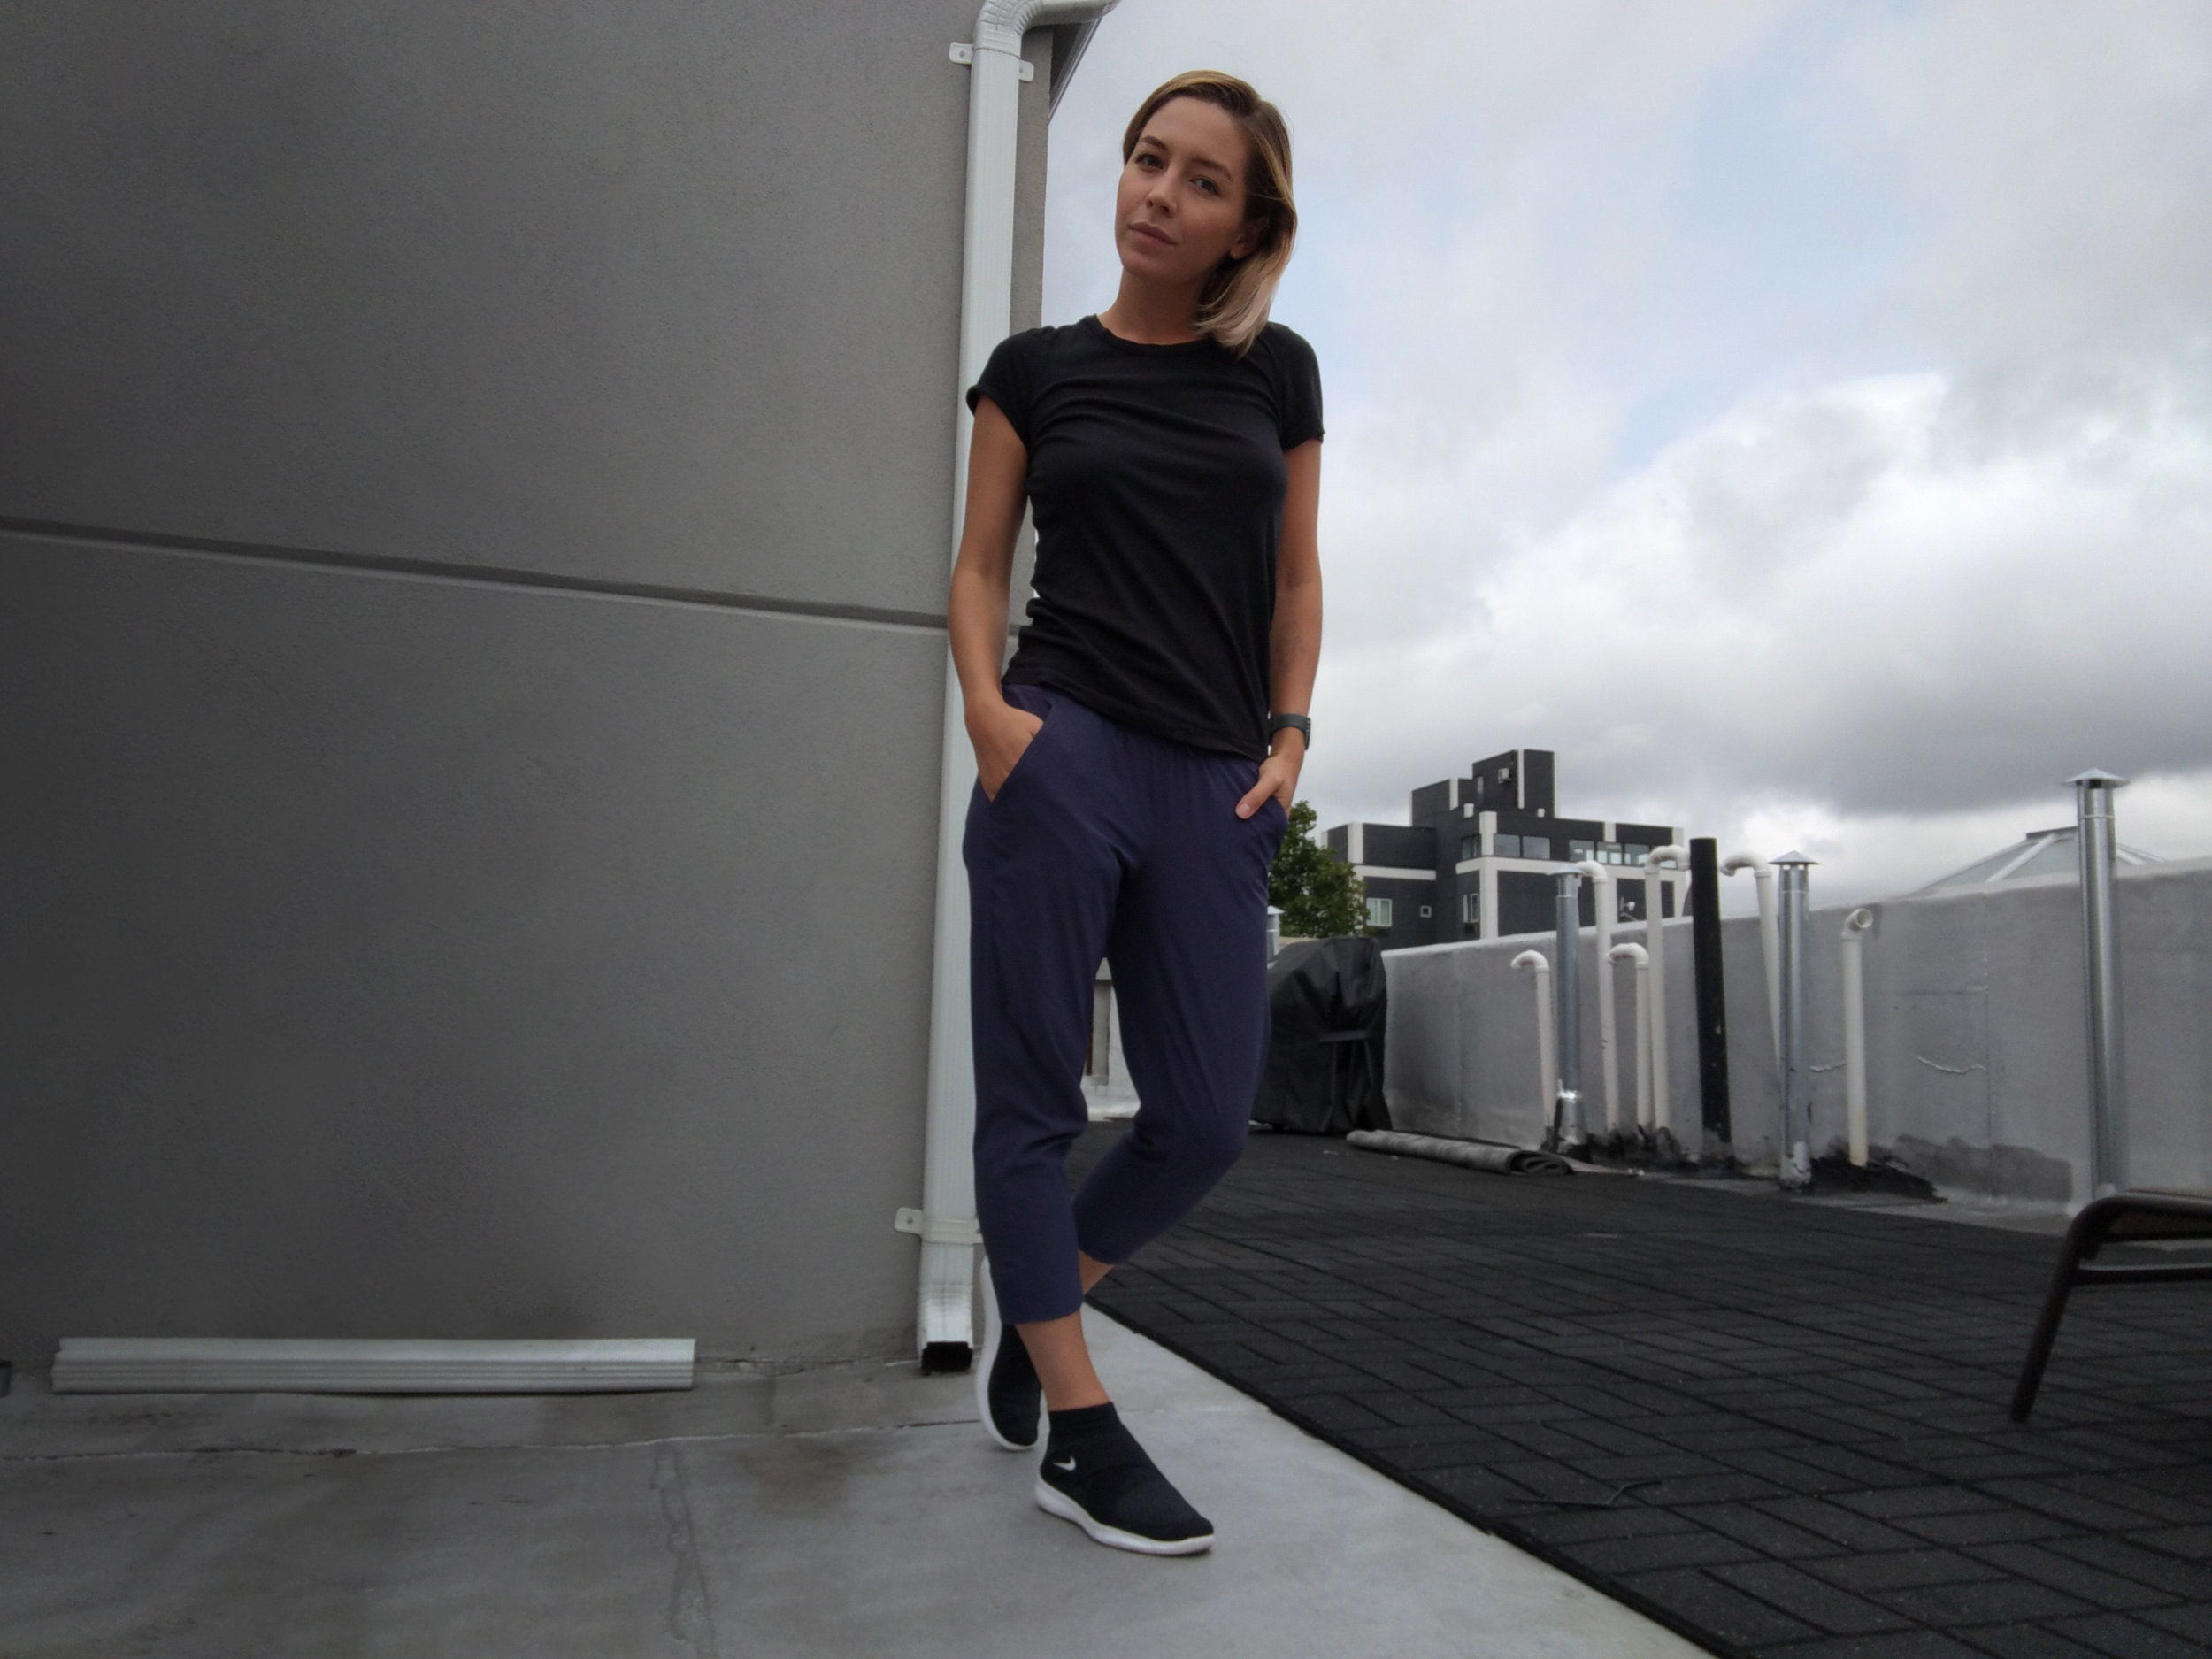 leanne-luce-wearing-nike-and-black-tee-on-roof-deck-fashion-blogger.jpg